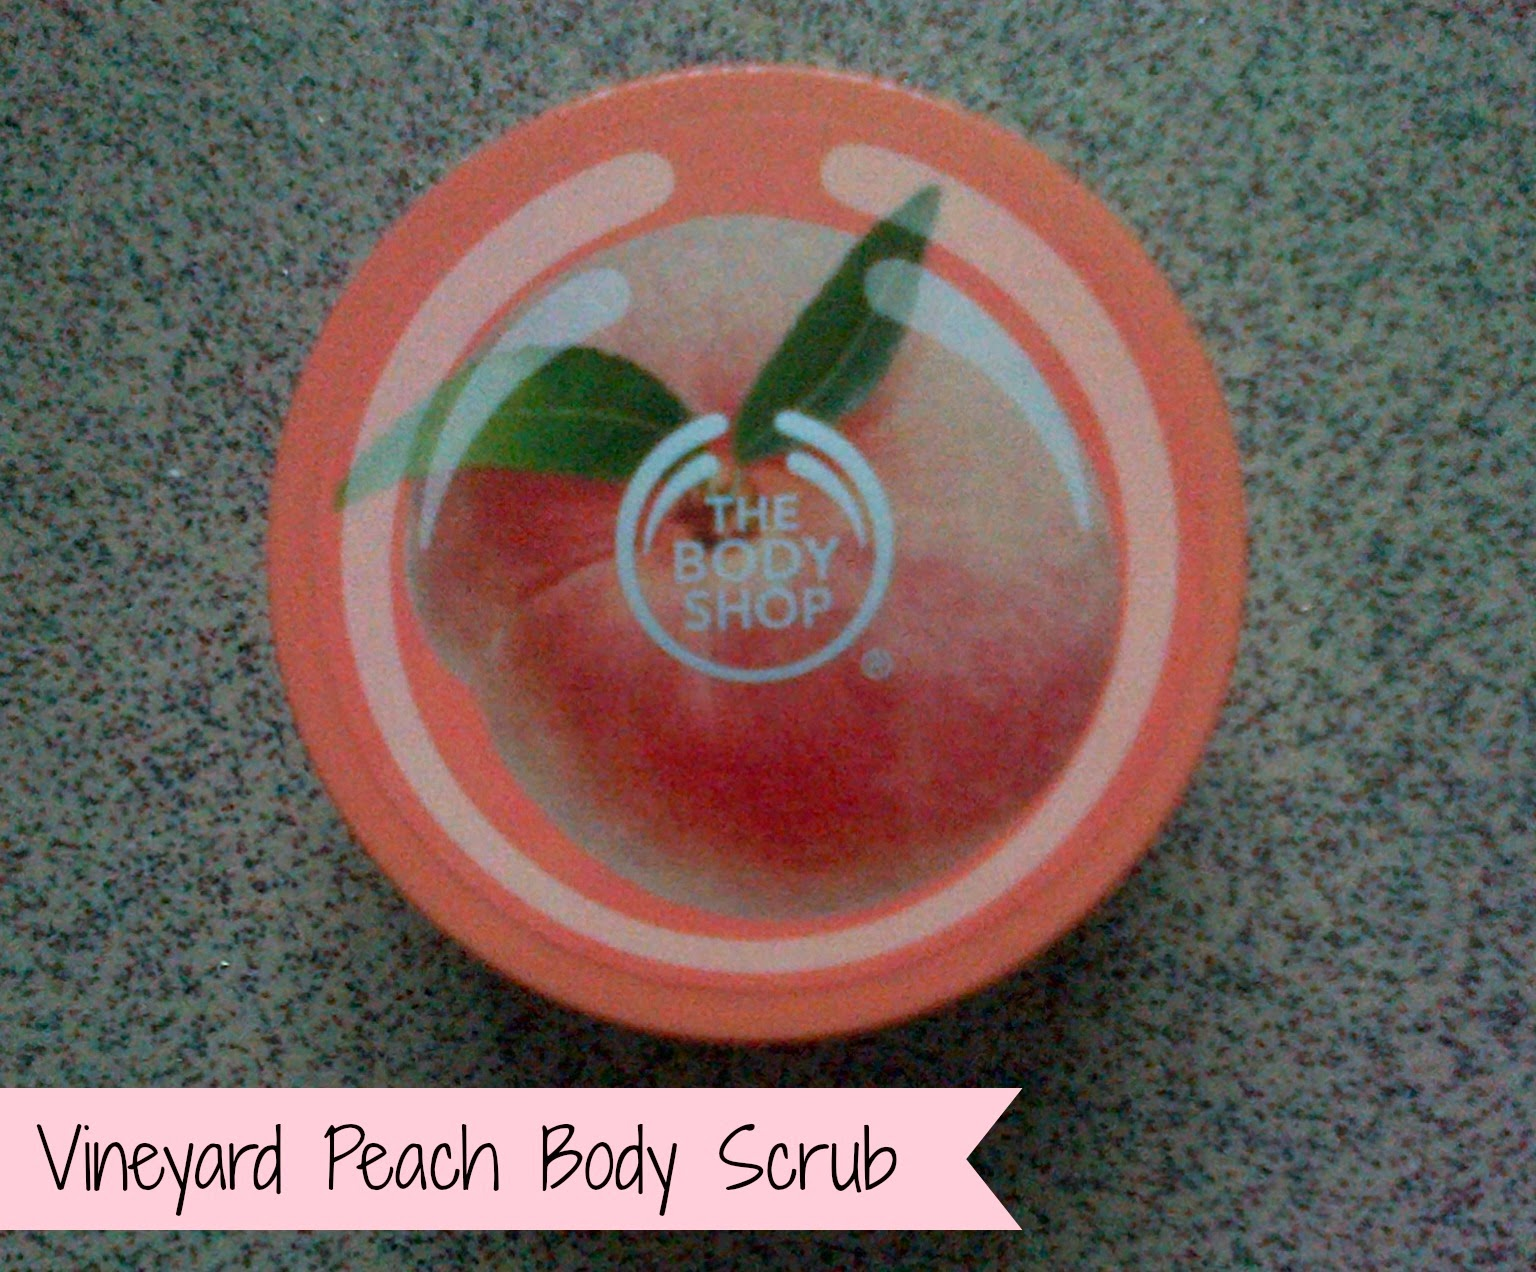 The Body Shop Vineyard Peach Body Scrub